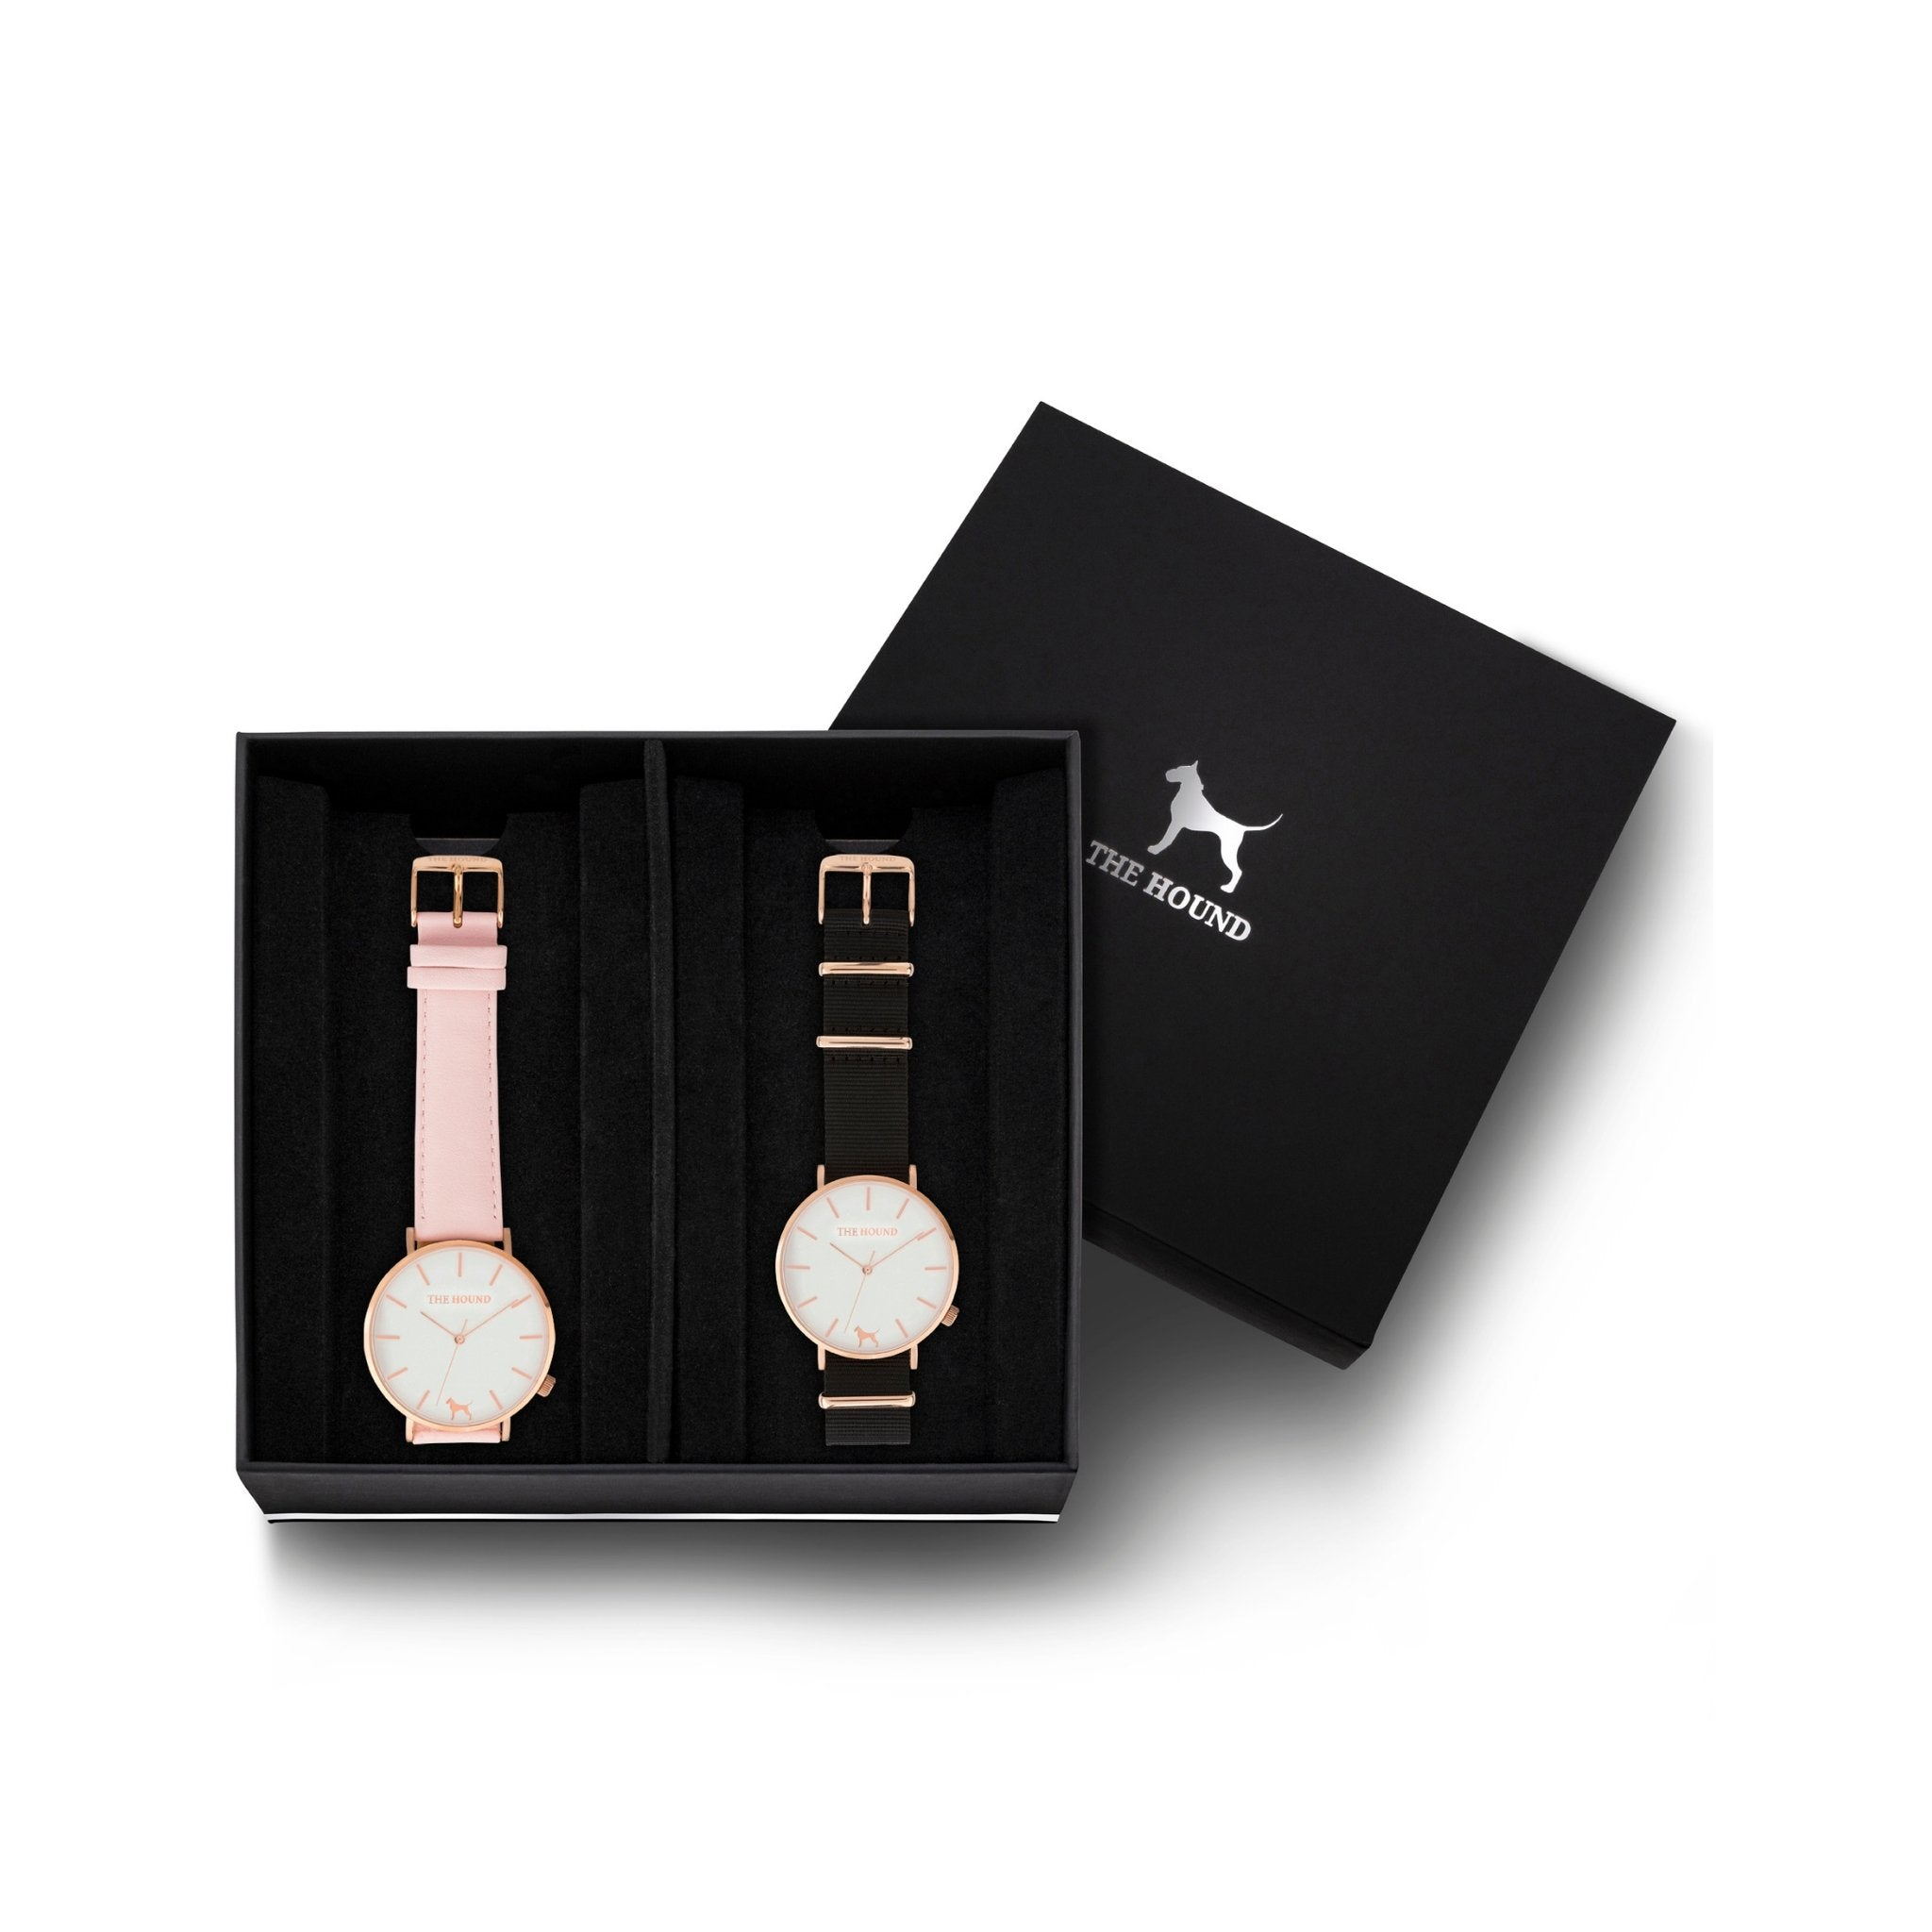 Custom gift set - Rose gold and white watch with stitched blush pink genuine leather band and a rose gold and white watch with black nato leather band